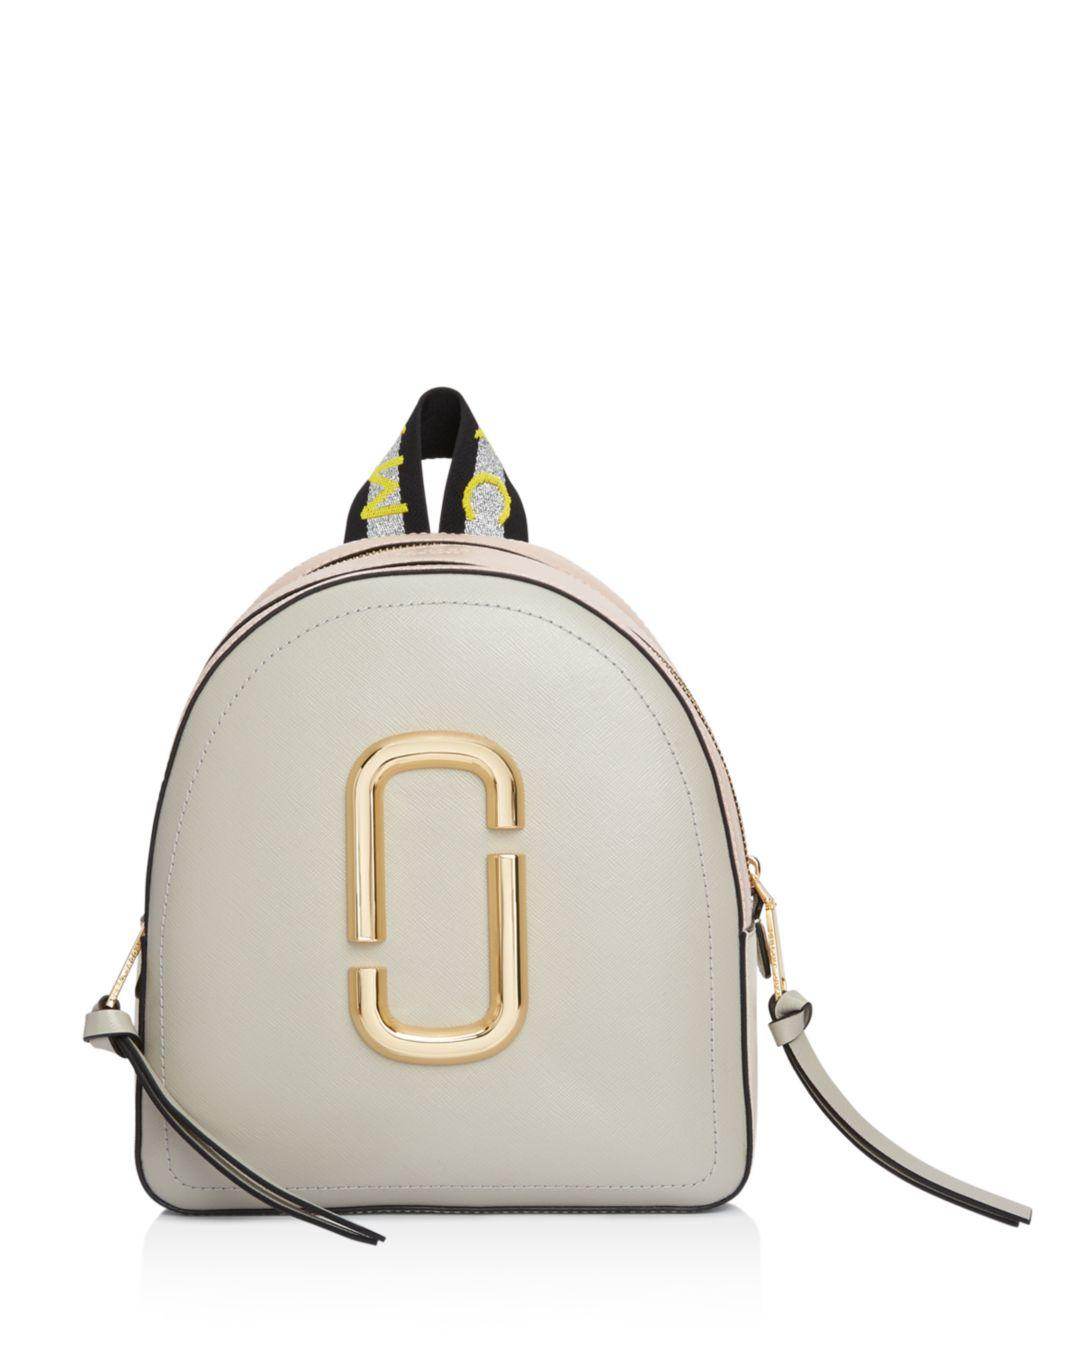 65060dde5580 Lyst - Marc Jacobs Pack Shot Color Block Leather Backpack in Metallic